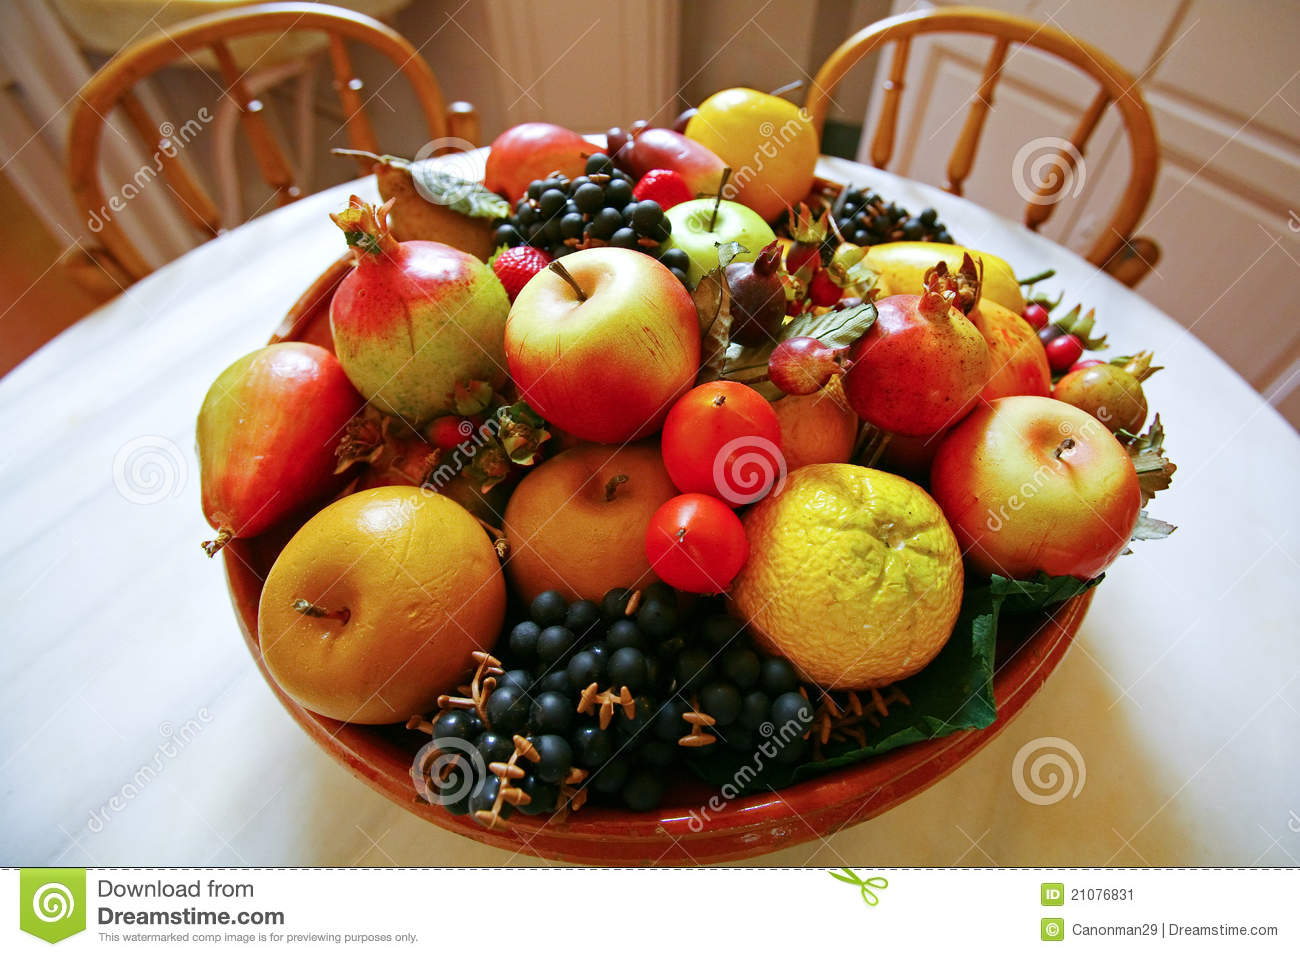 Fruit basket on the table stock image. Image of life ...